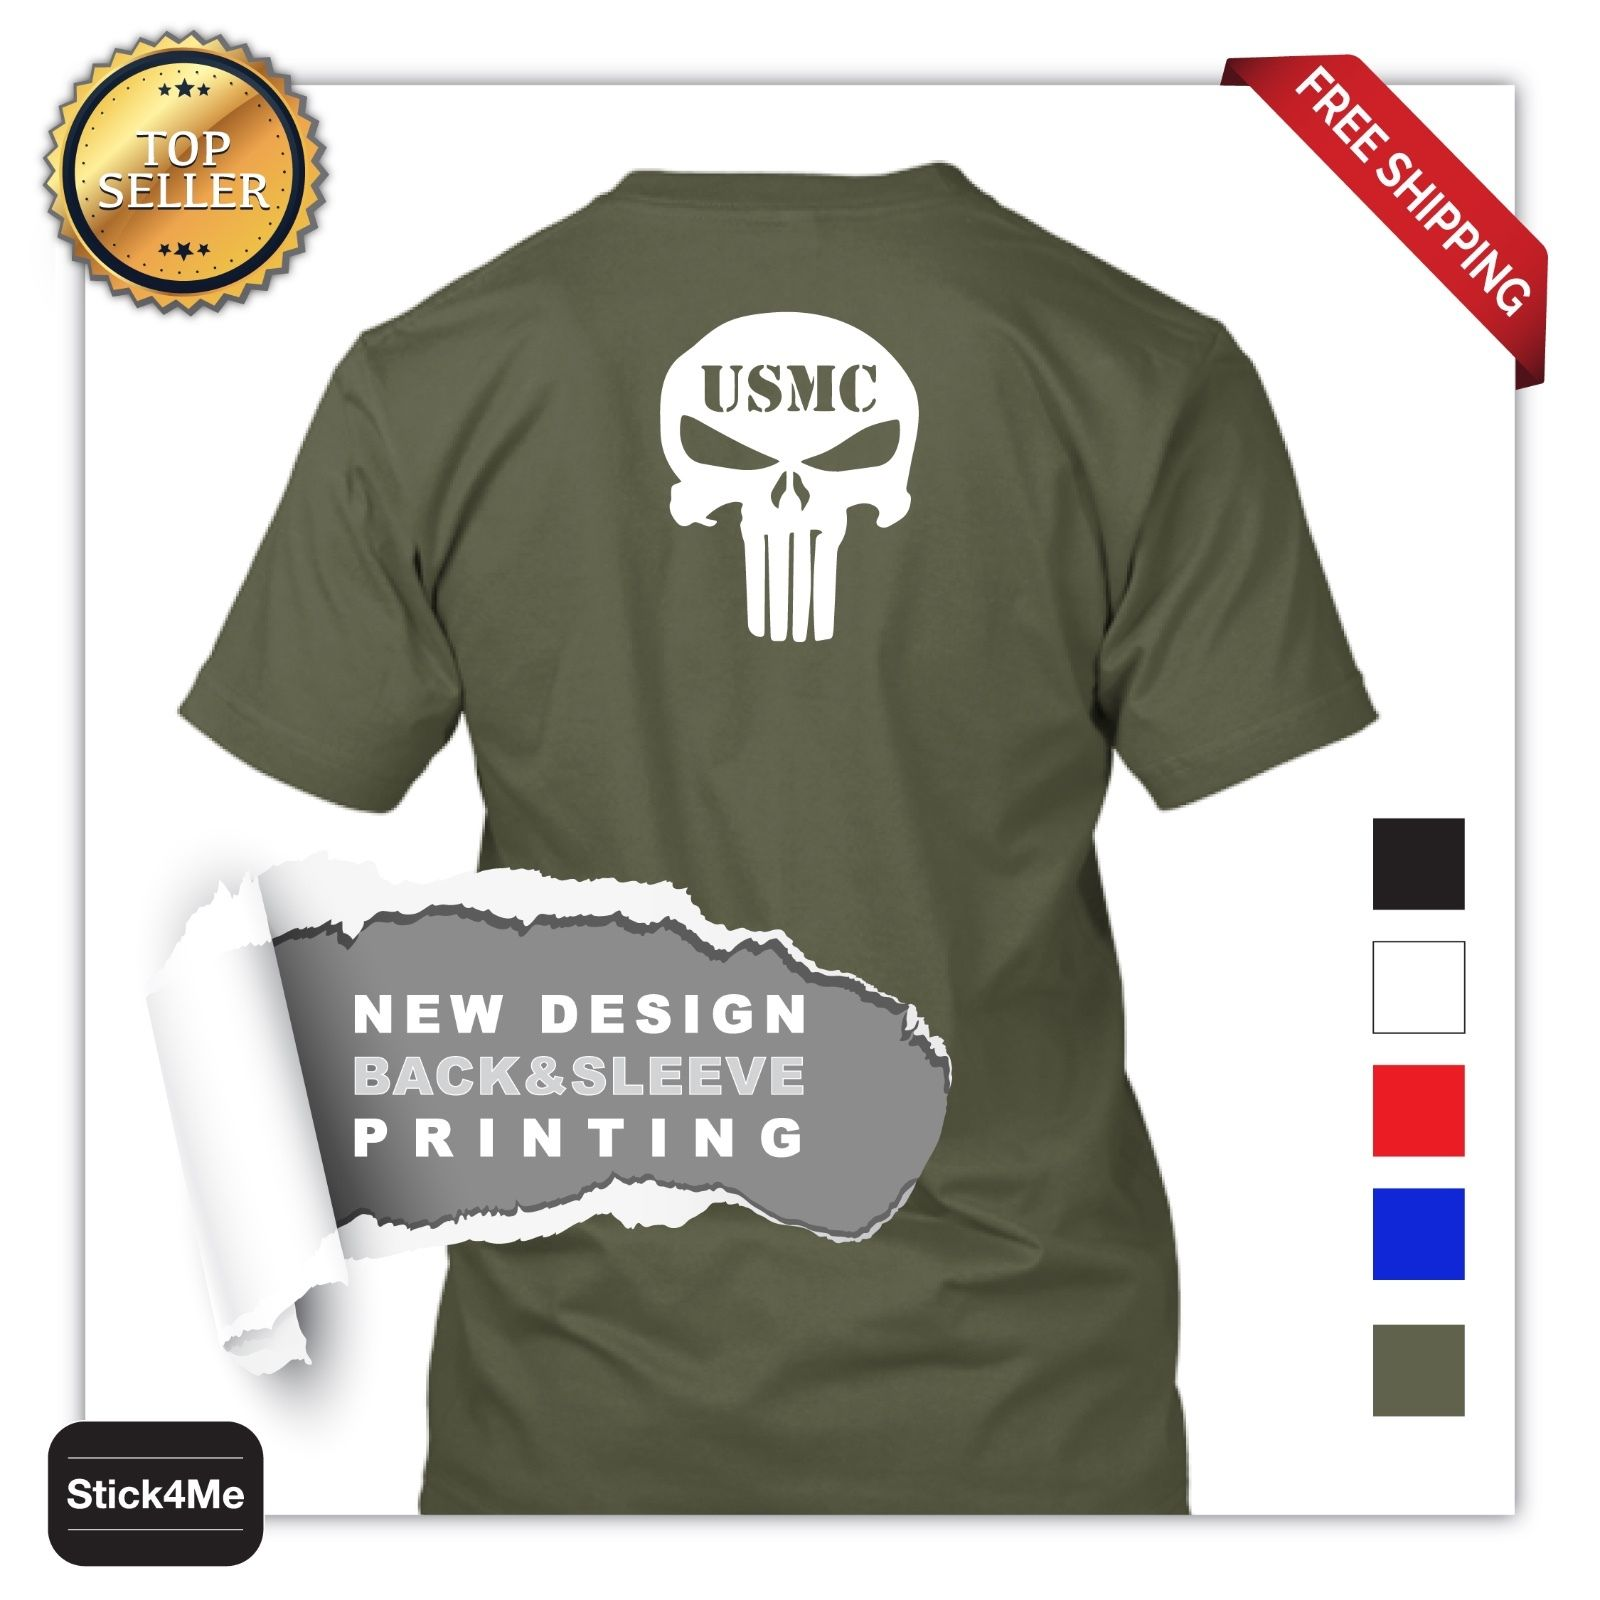 Free Shipping Summer Fashion NEW ARMY <font><b>USMC</b></font> <font><b>T</b></font> <font><b>SHIRT</b></font> 100% COTTON 5 COLORS BACK PRINT Summer Men Clothing image